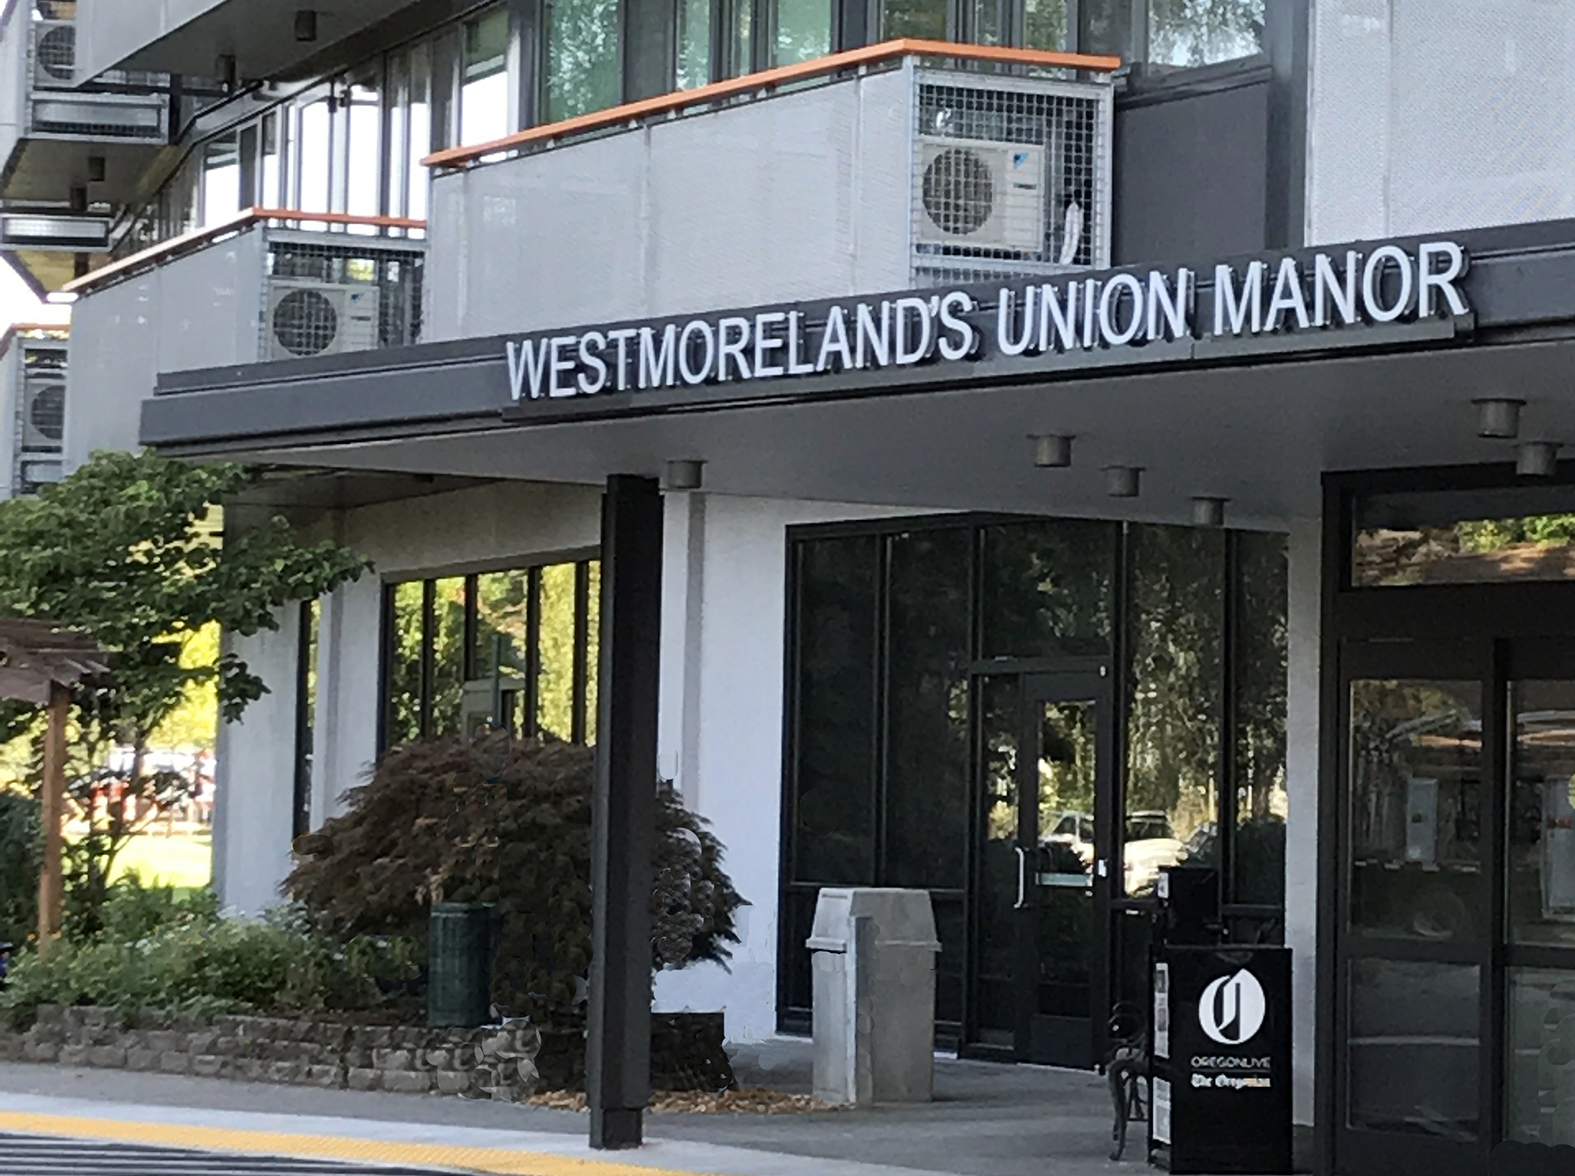 the union manors manors make the difference